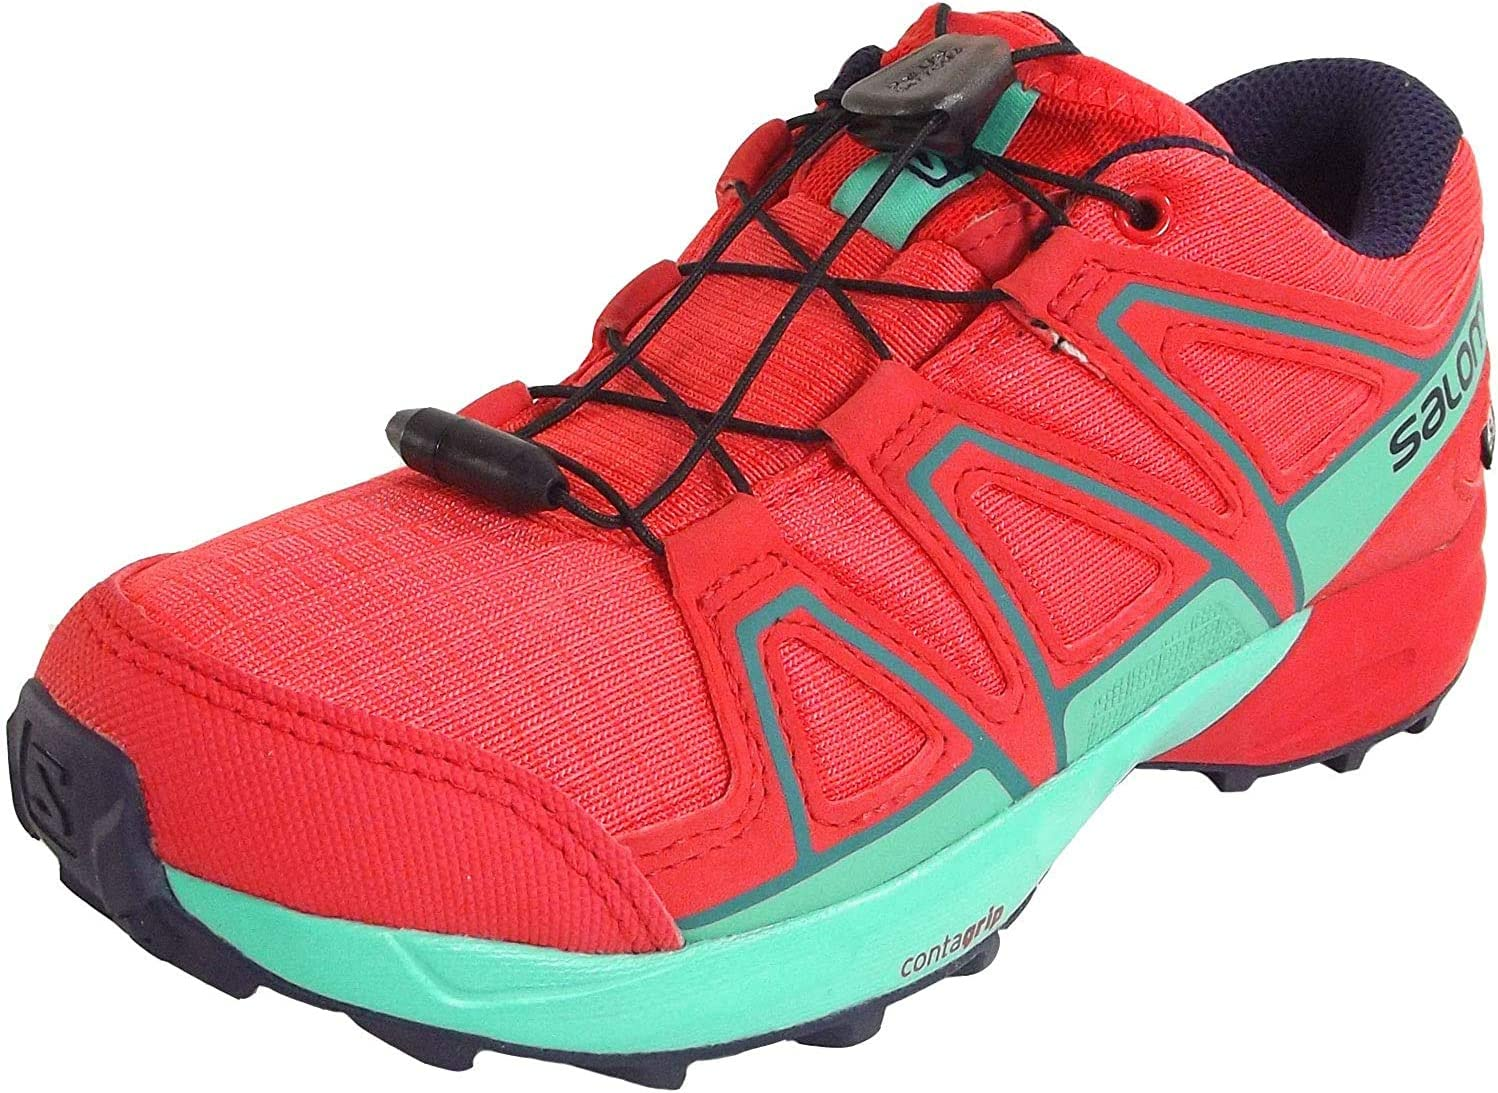 Salomon Speedcross CSWP Junior Zapatilla De Correr para Tierra - AW18: Amazon.es: Zapatos y complementos